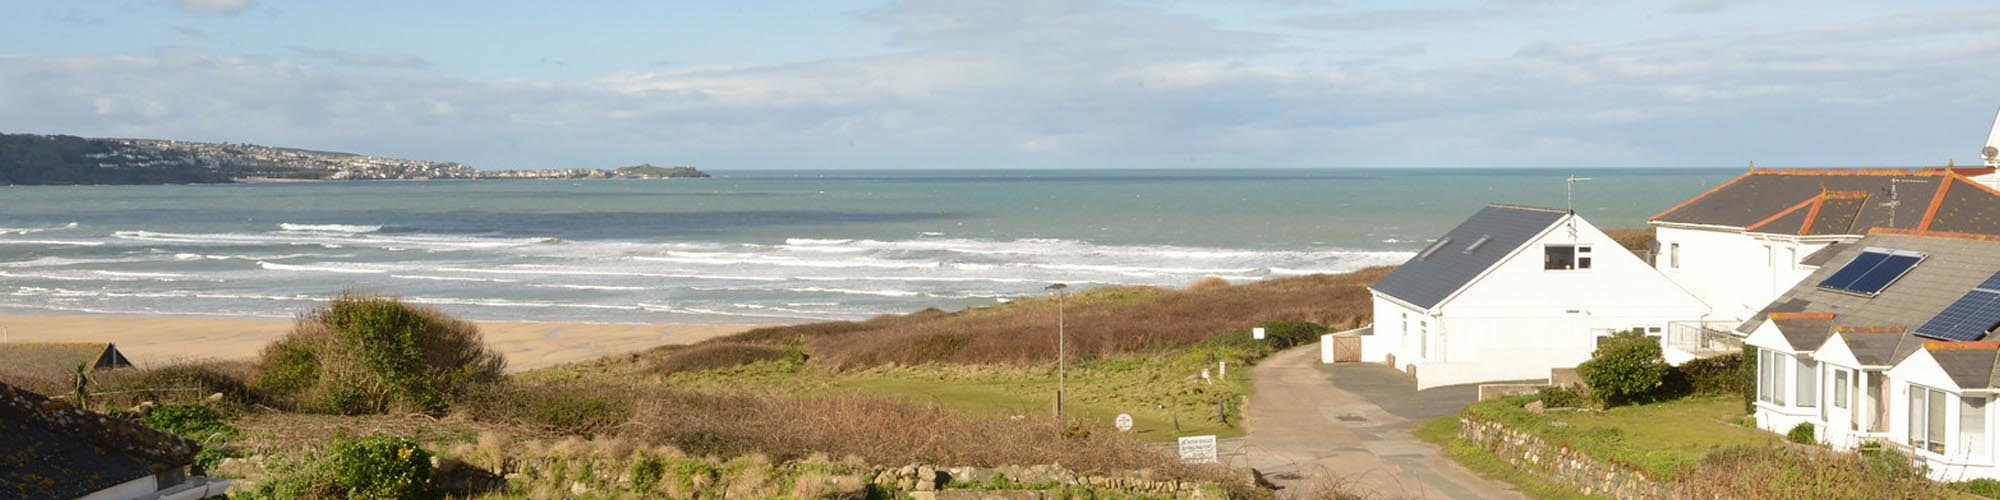 Self Catering Portreath - Bay View Apartment